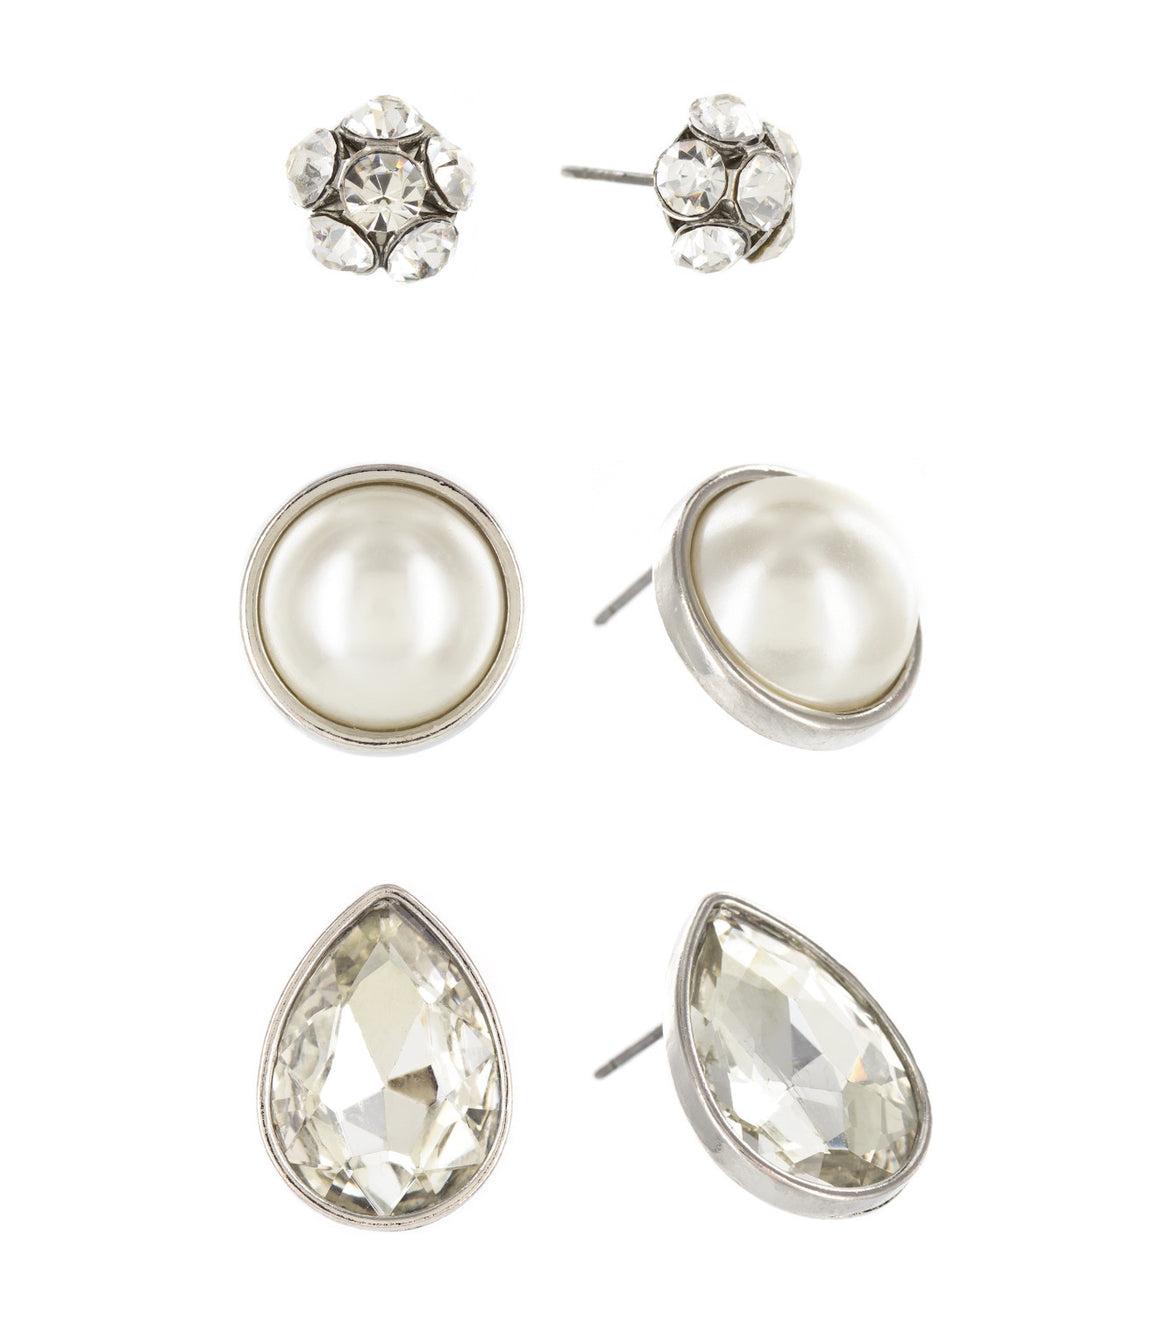 Oversize rhinestone and pearl Stud Earrings Set.